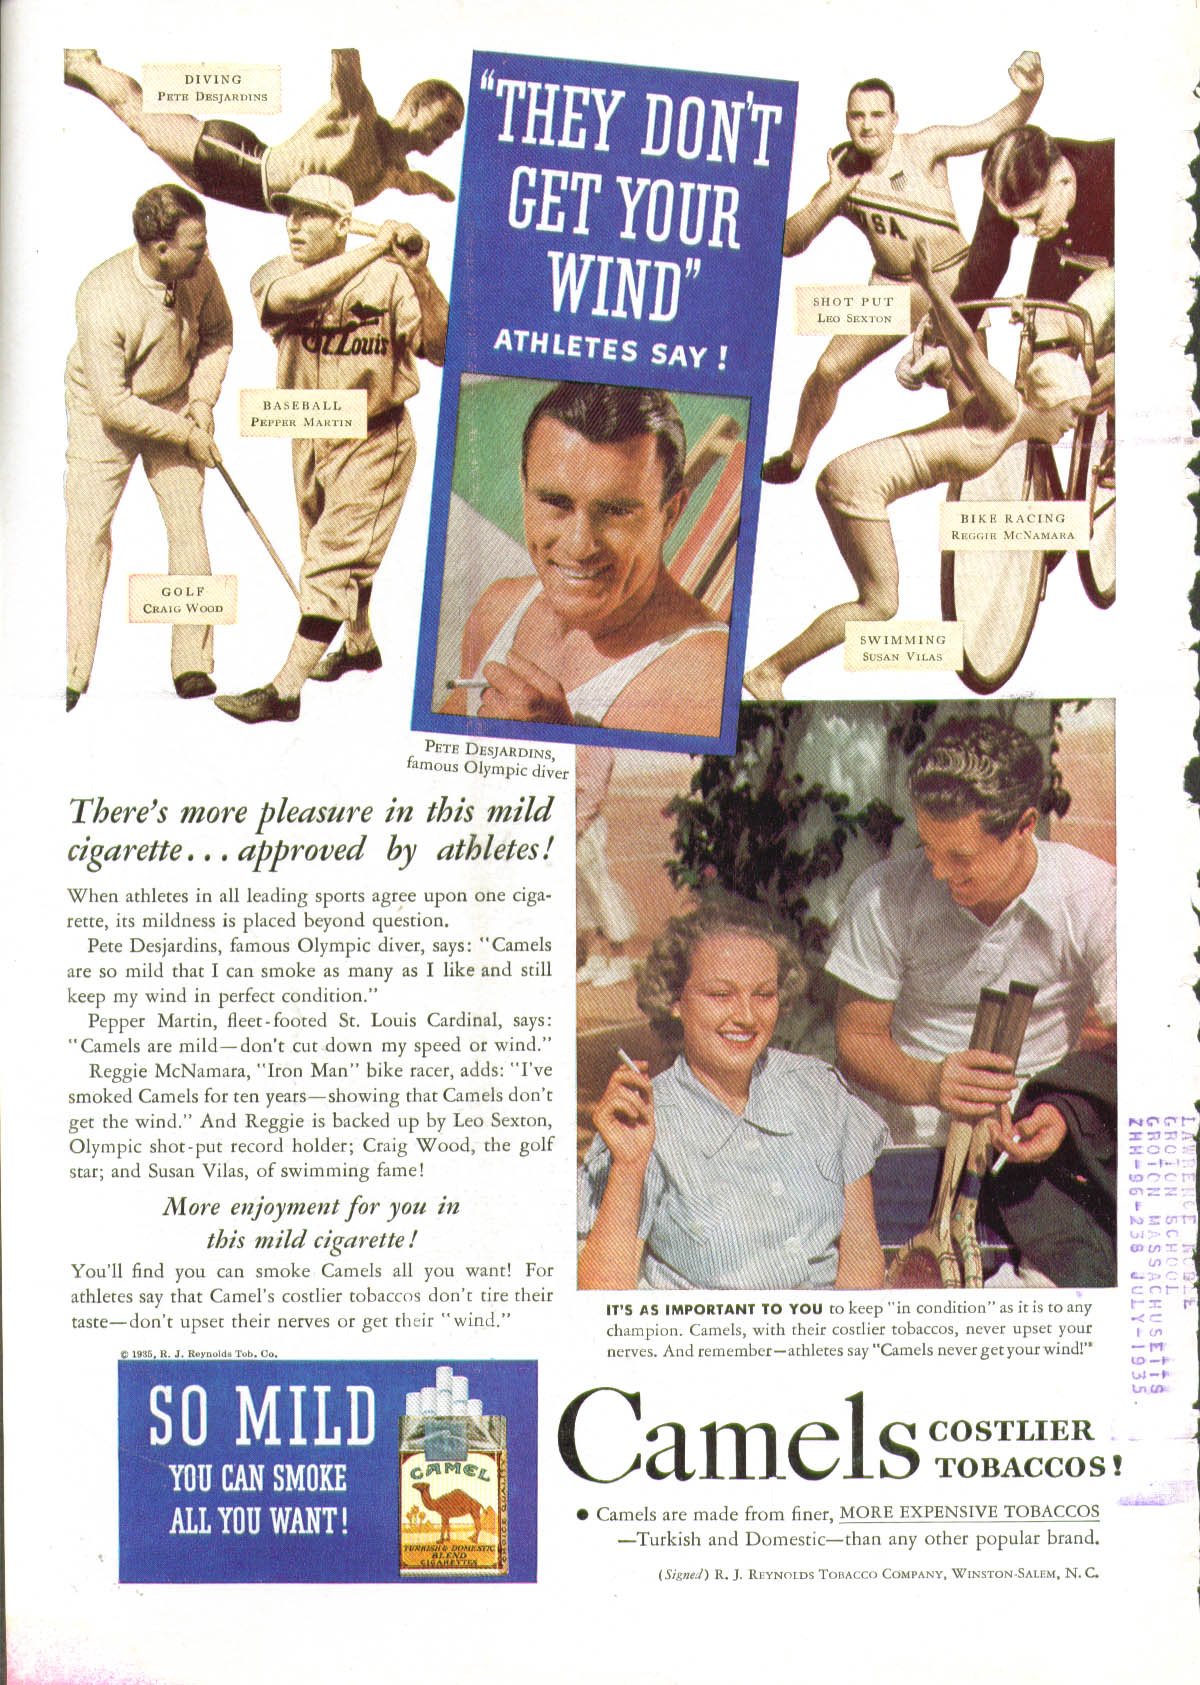 They don't get your wind Big Bill Tilden Pepper Martin Camel Cigarettes ad 1935